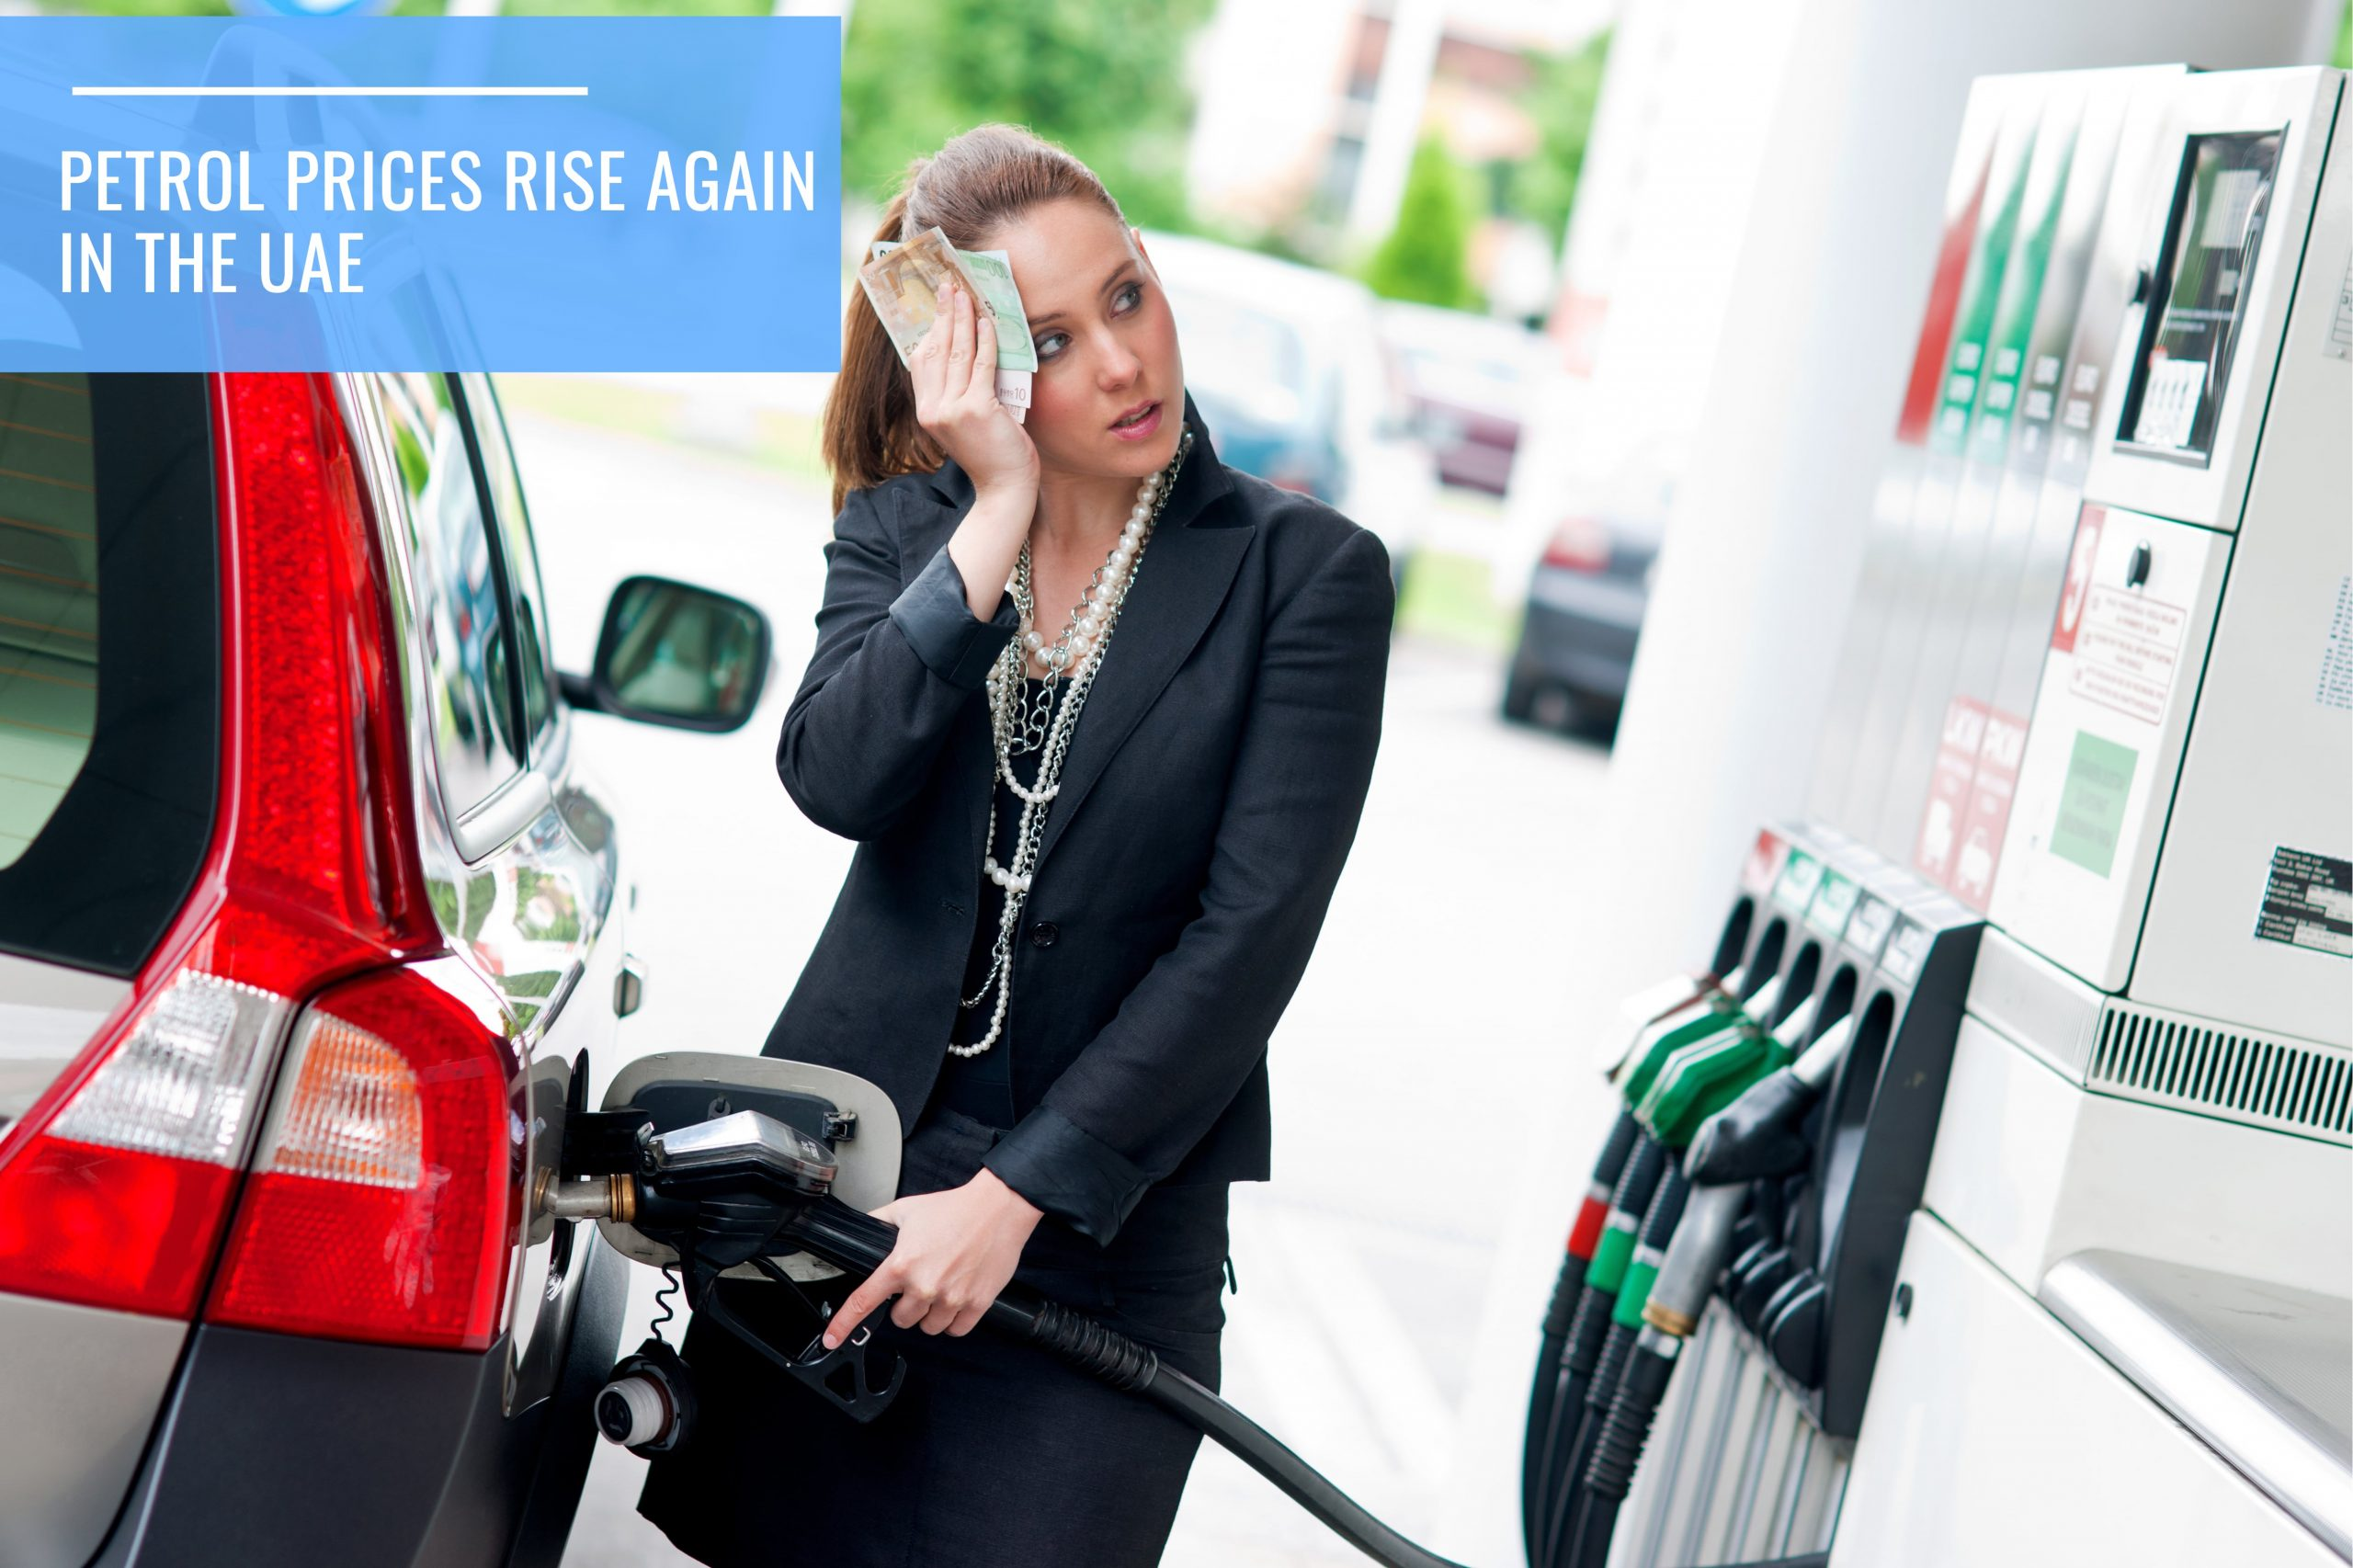 Petrol prices go up in May